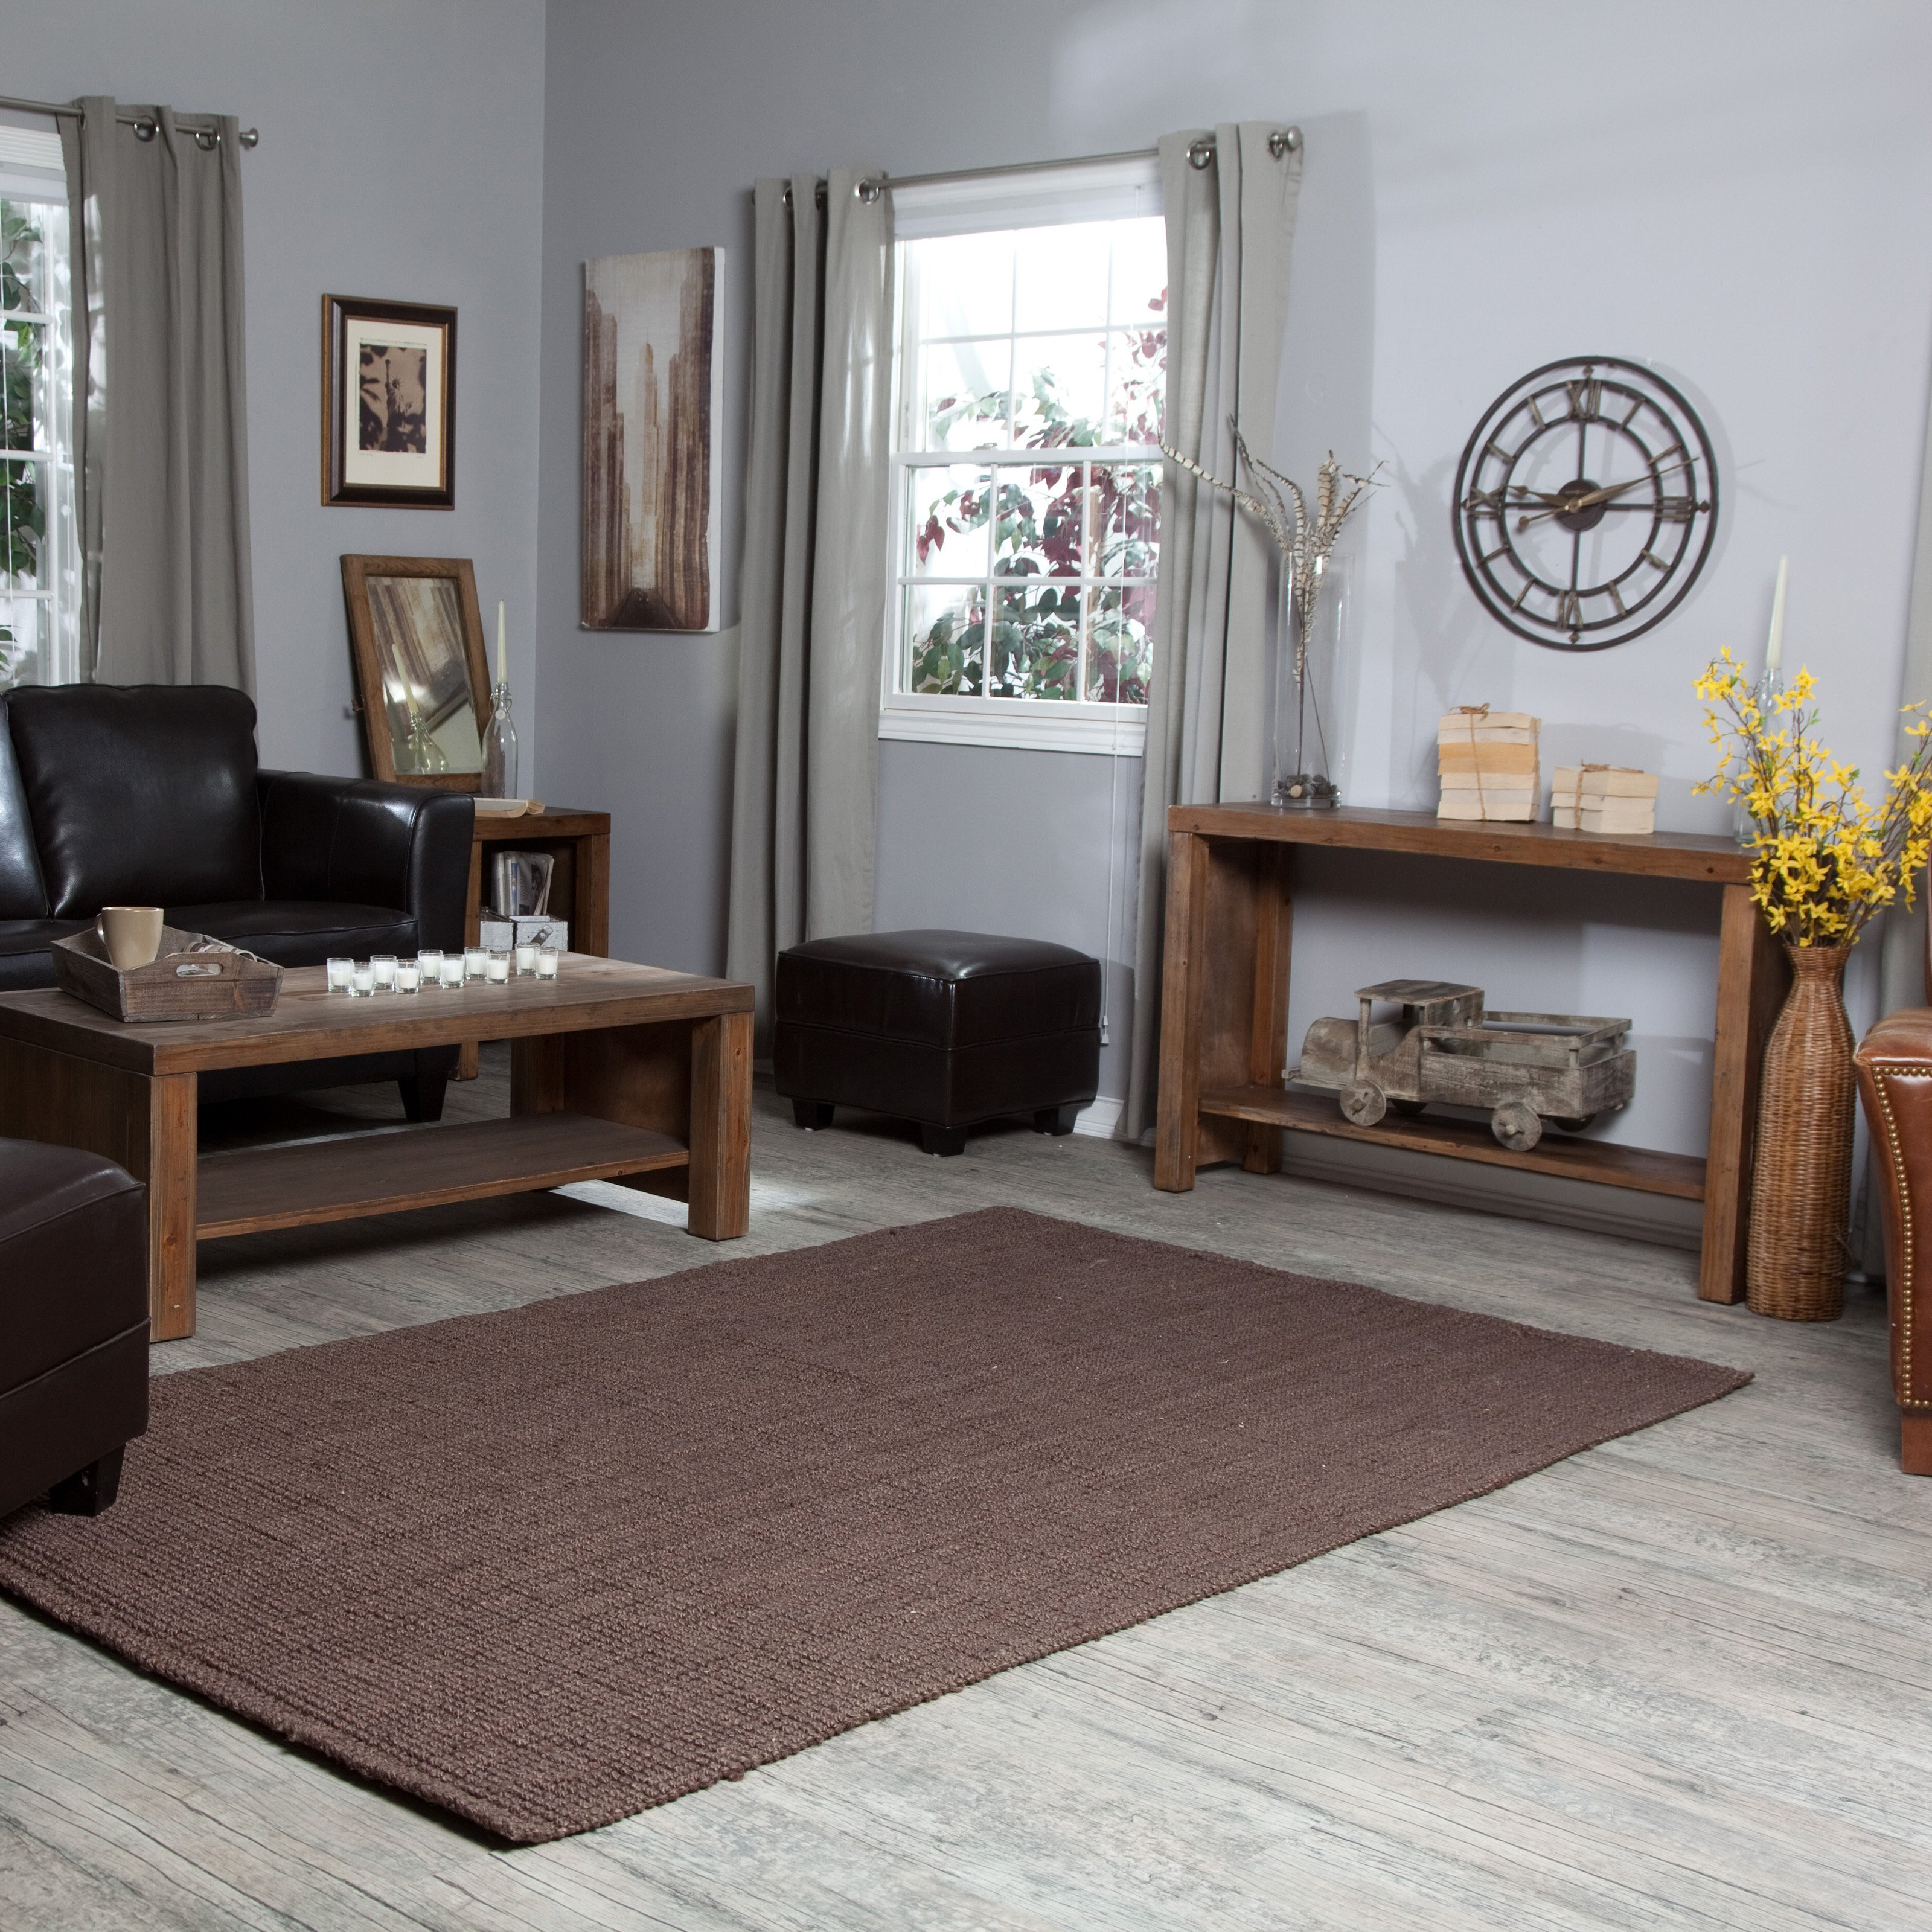 Belham Living Brinfield Rustic Solid Wood Occasional Table Collection